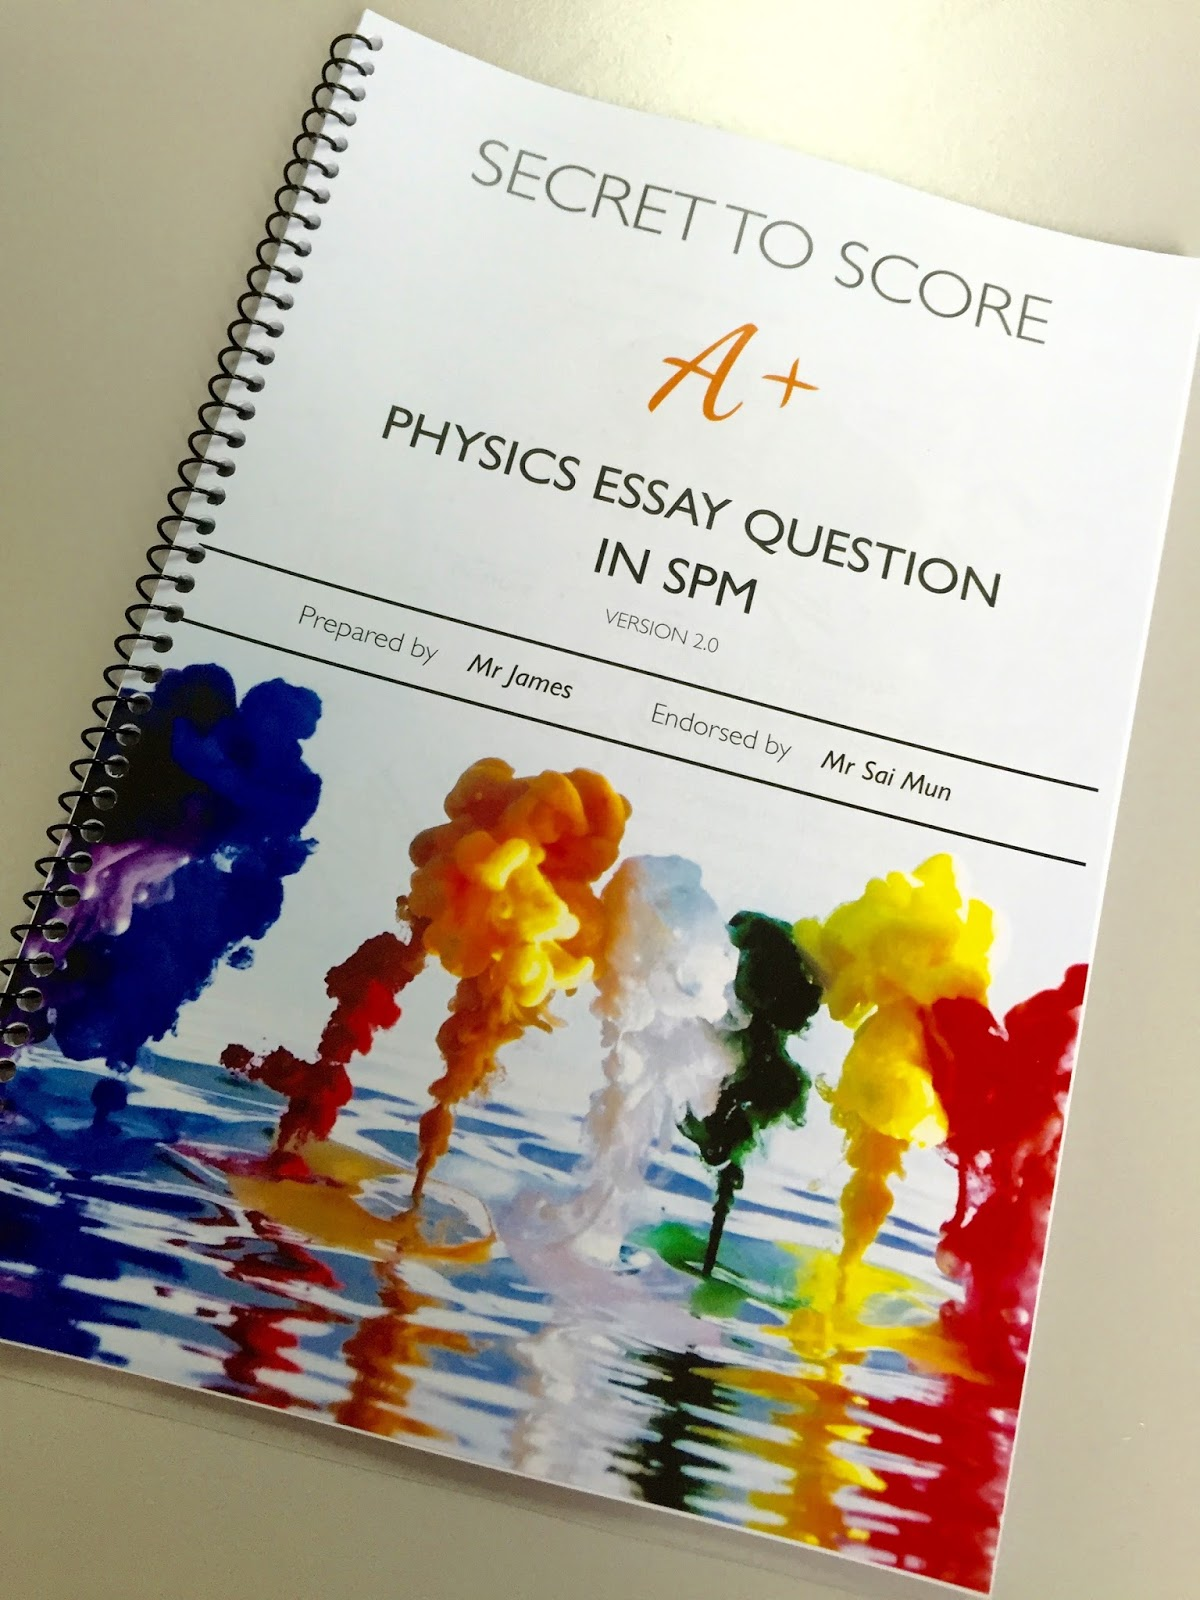 secret to score a physics essay questions in spm version mr secret to score a physics essay questions in spm version 2 0